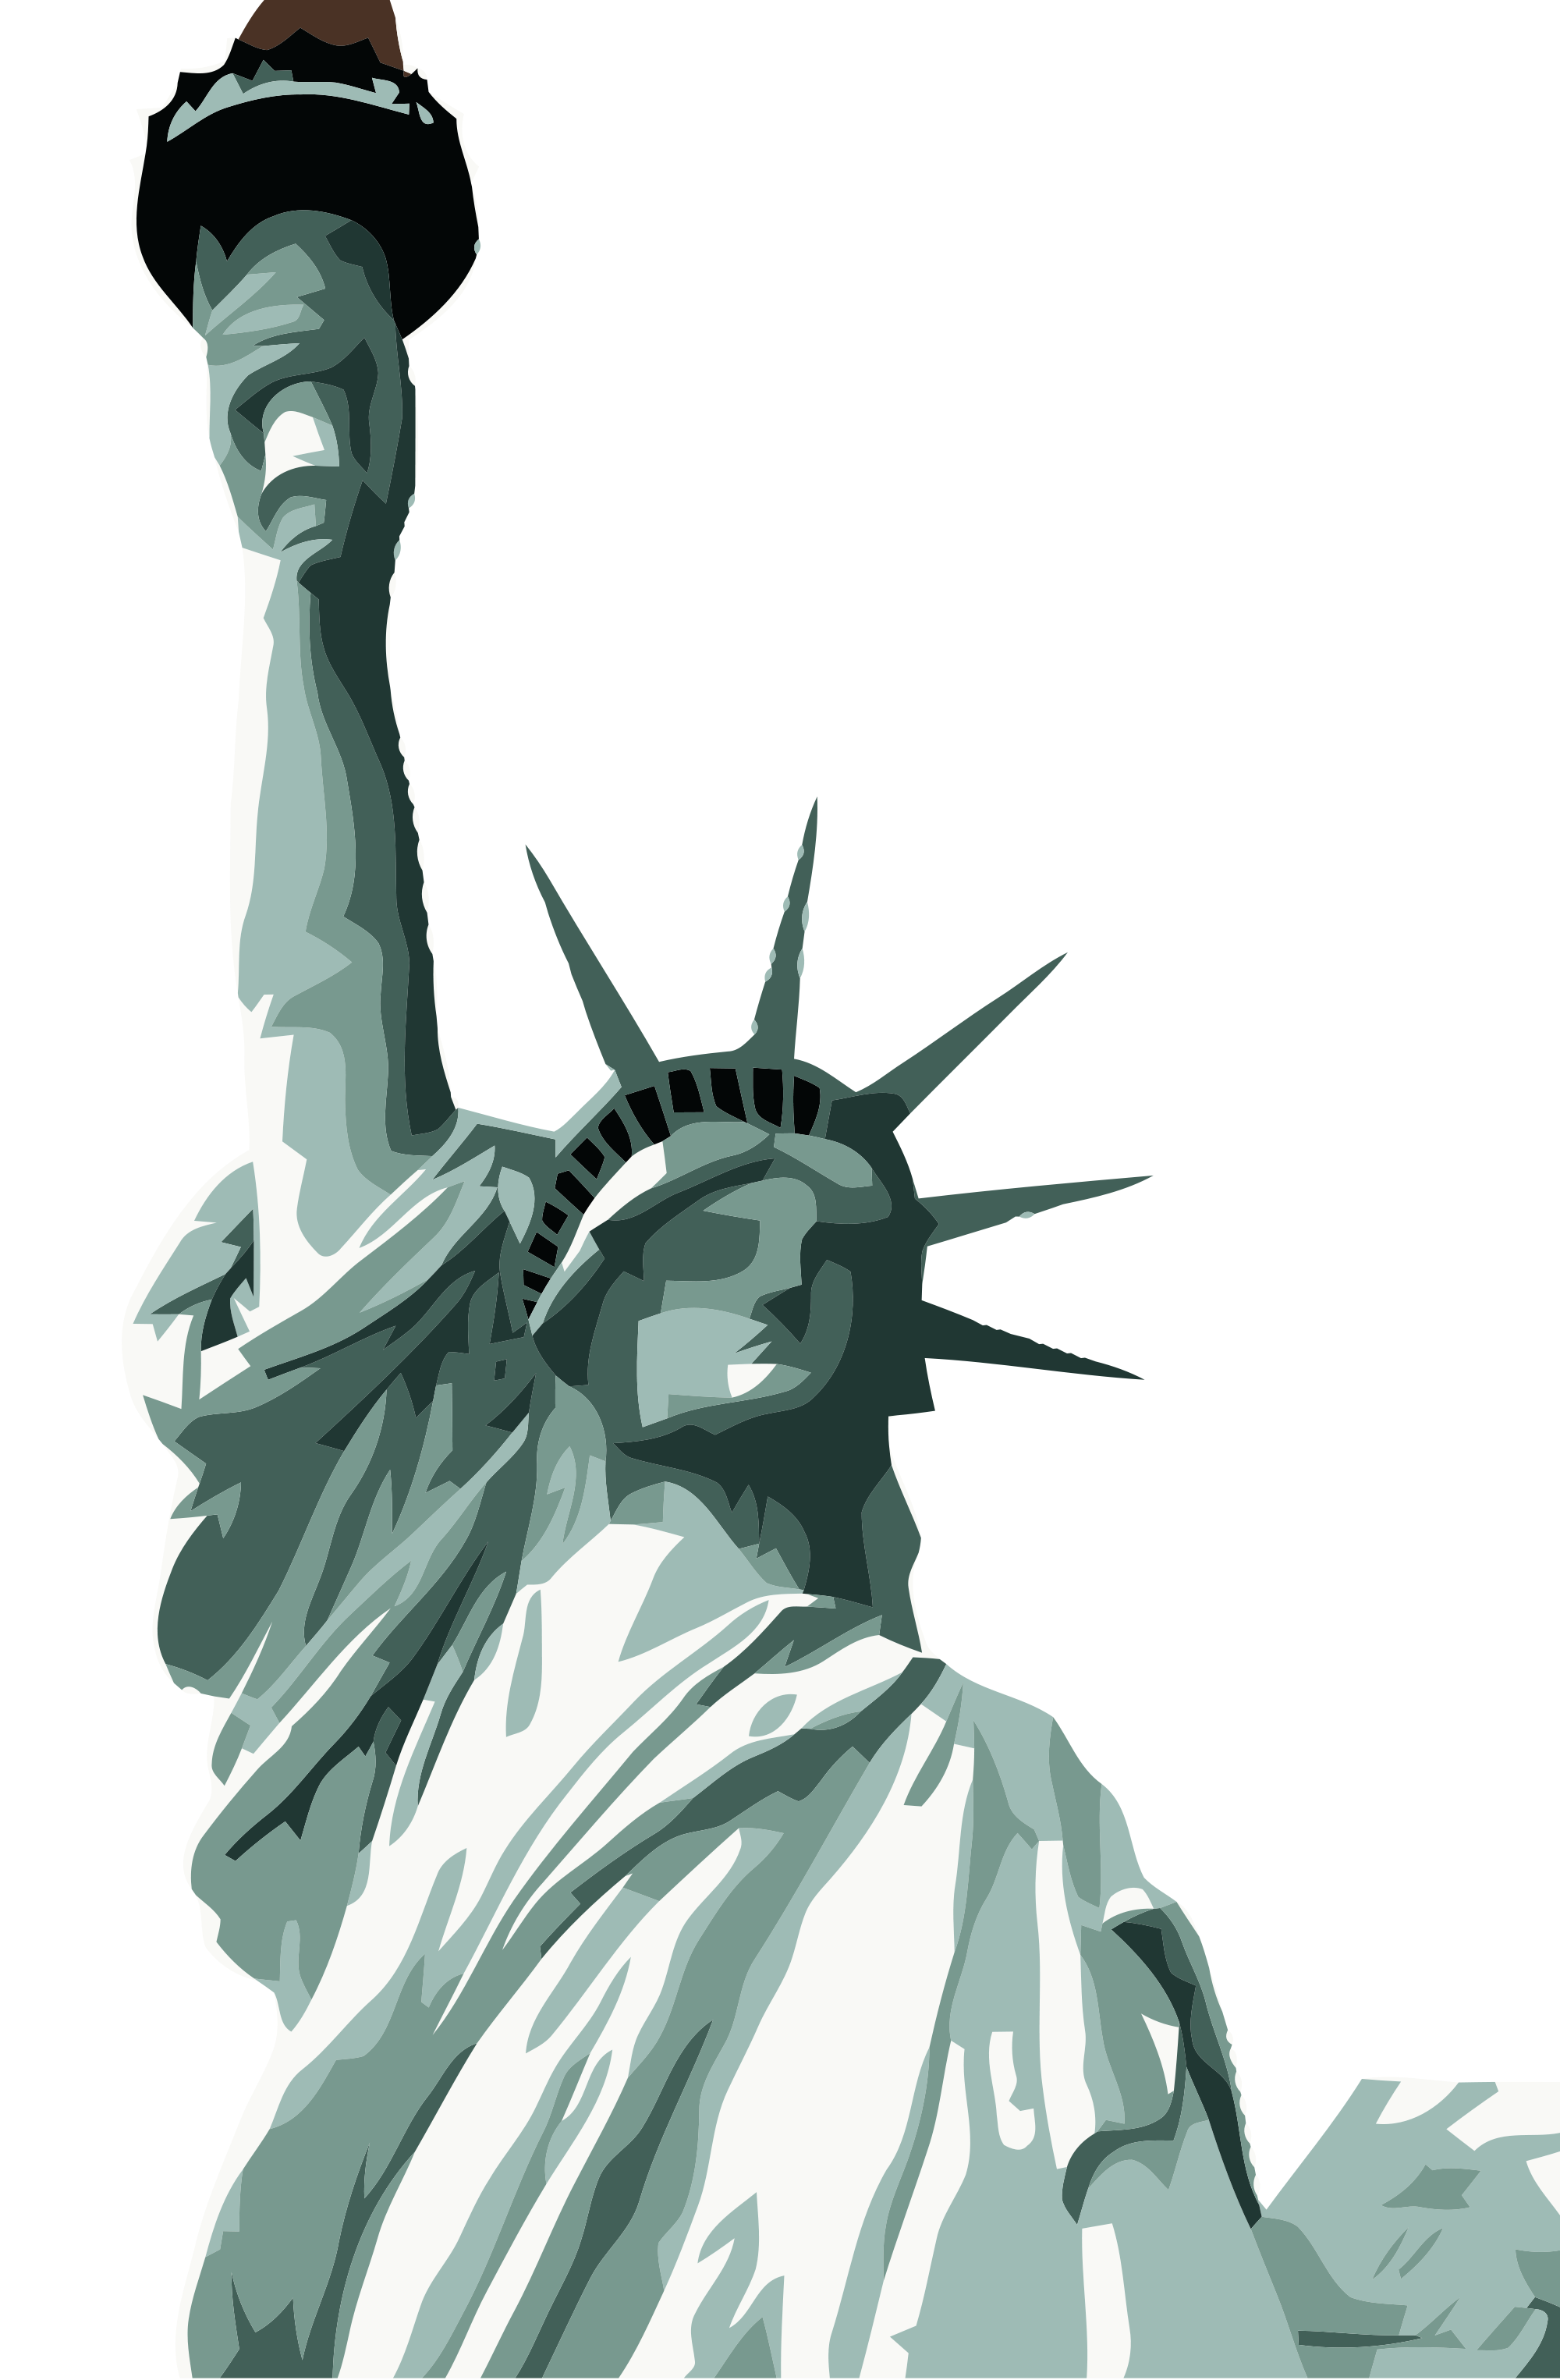 Statue liberty clipart jpg library Pin by Hopeless on Clipart | Statue of liberty, Statue ... jpg library